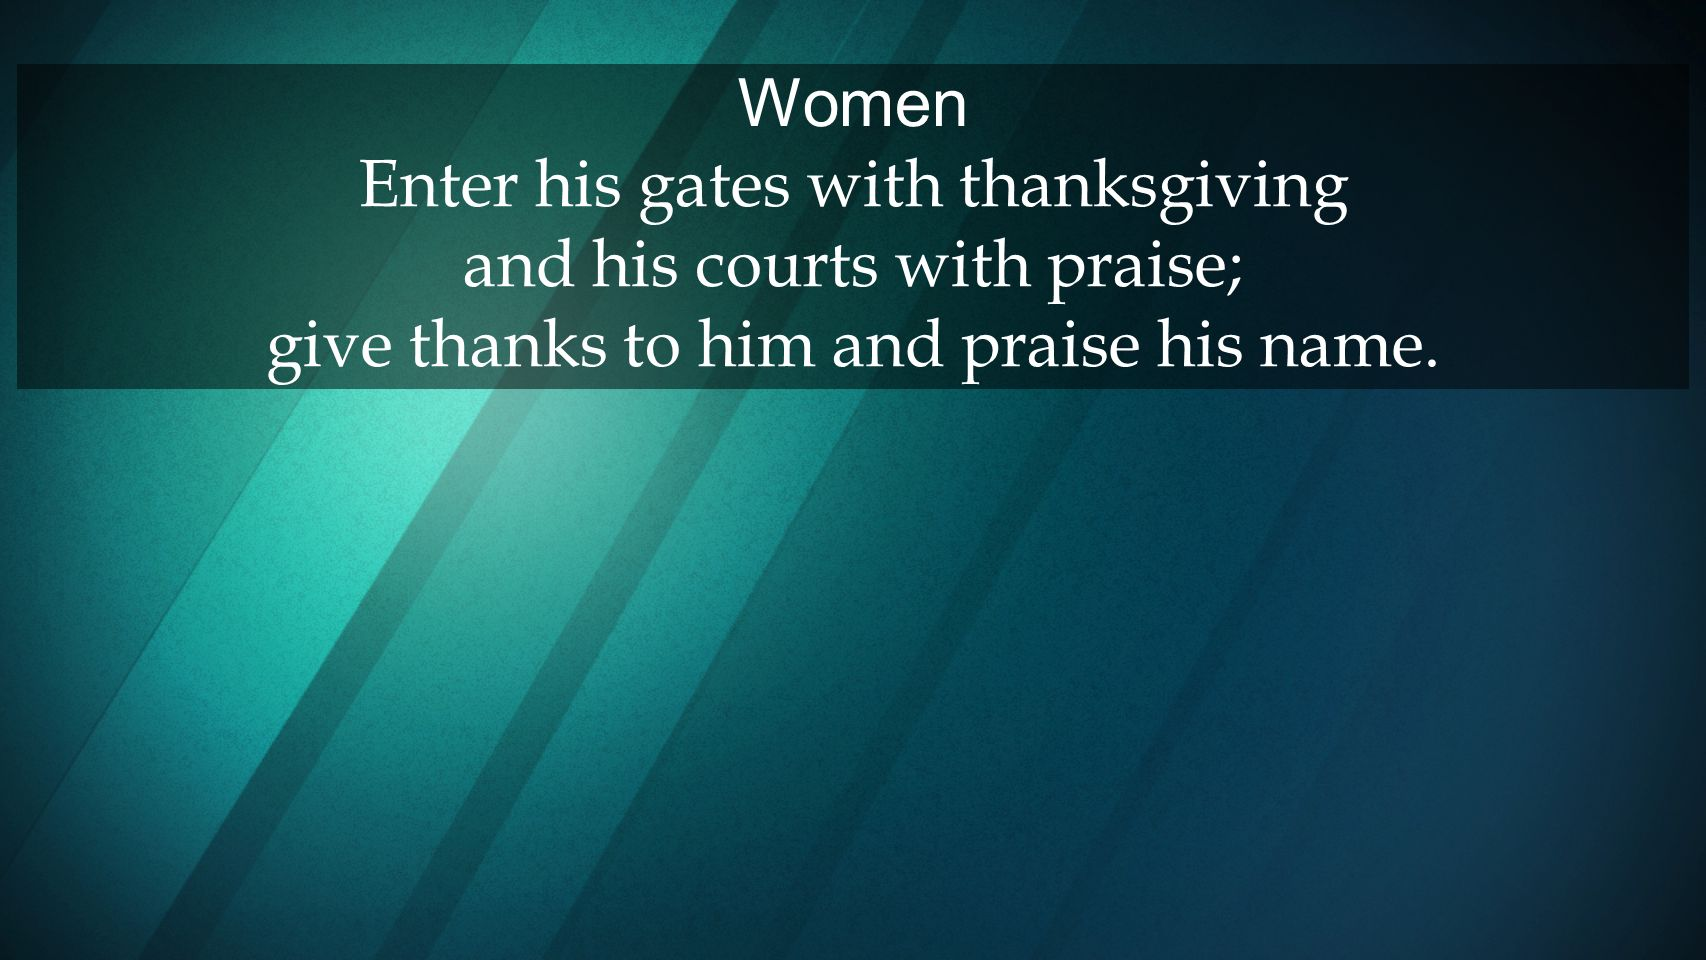 Women Enter his gates with thanksgiving and his courts with praise; give thanks to him and praise his name.